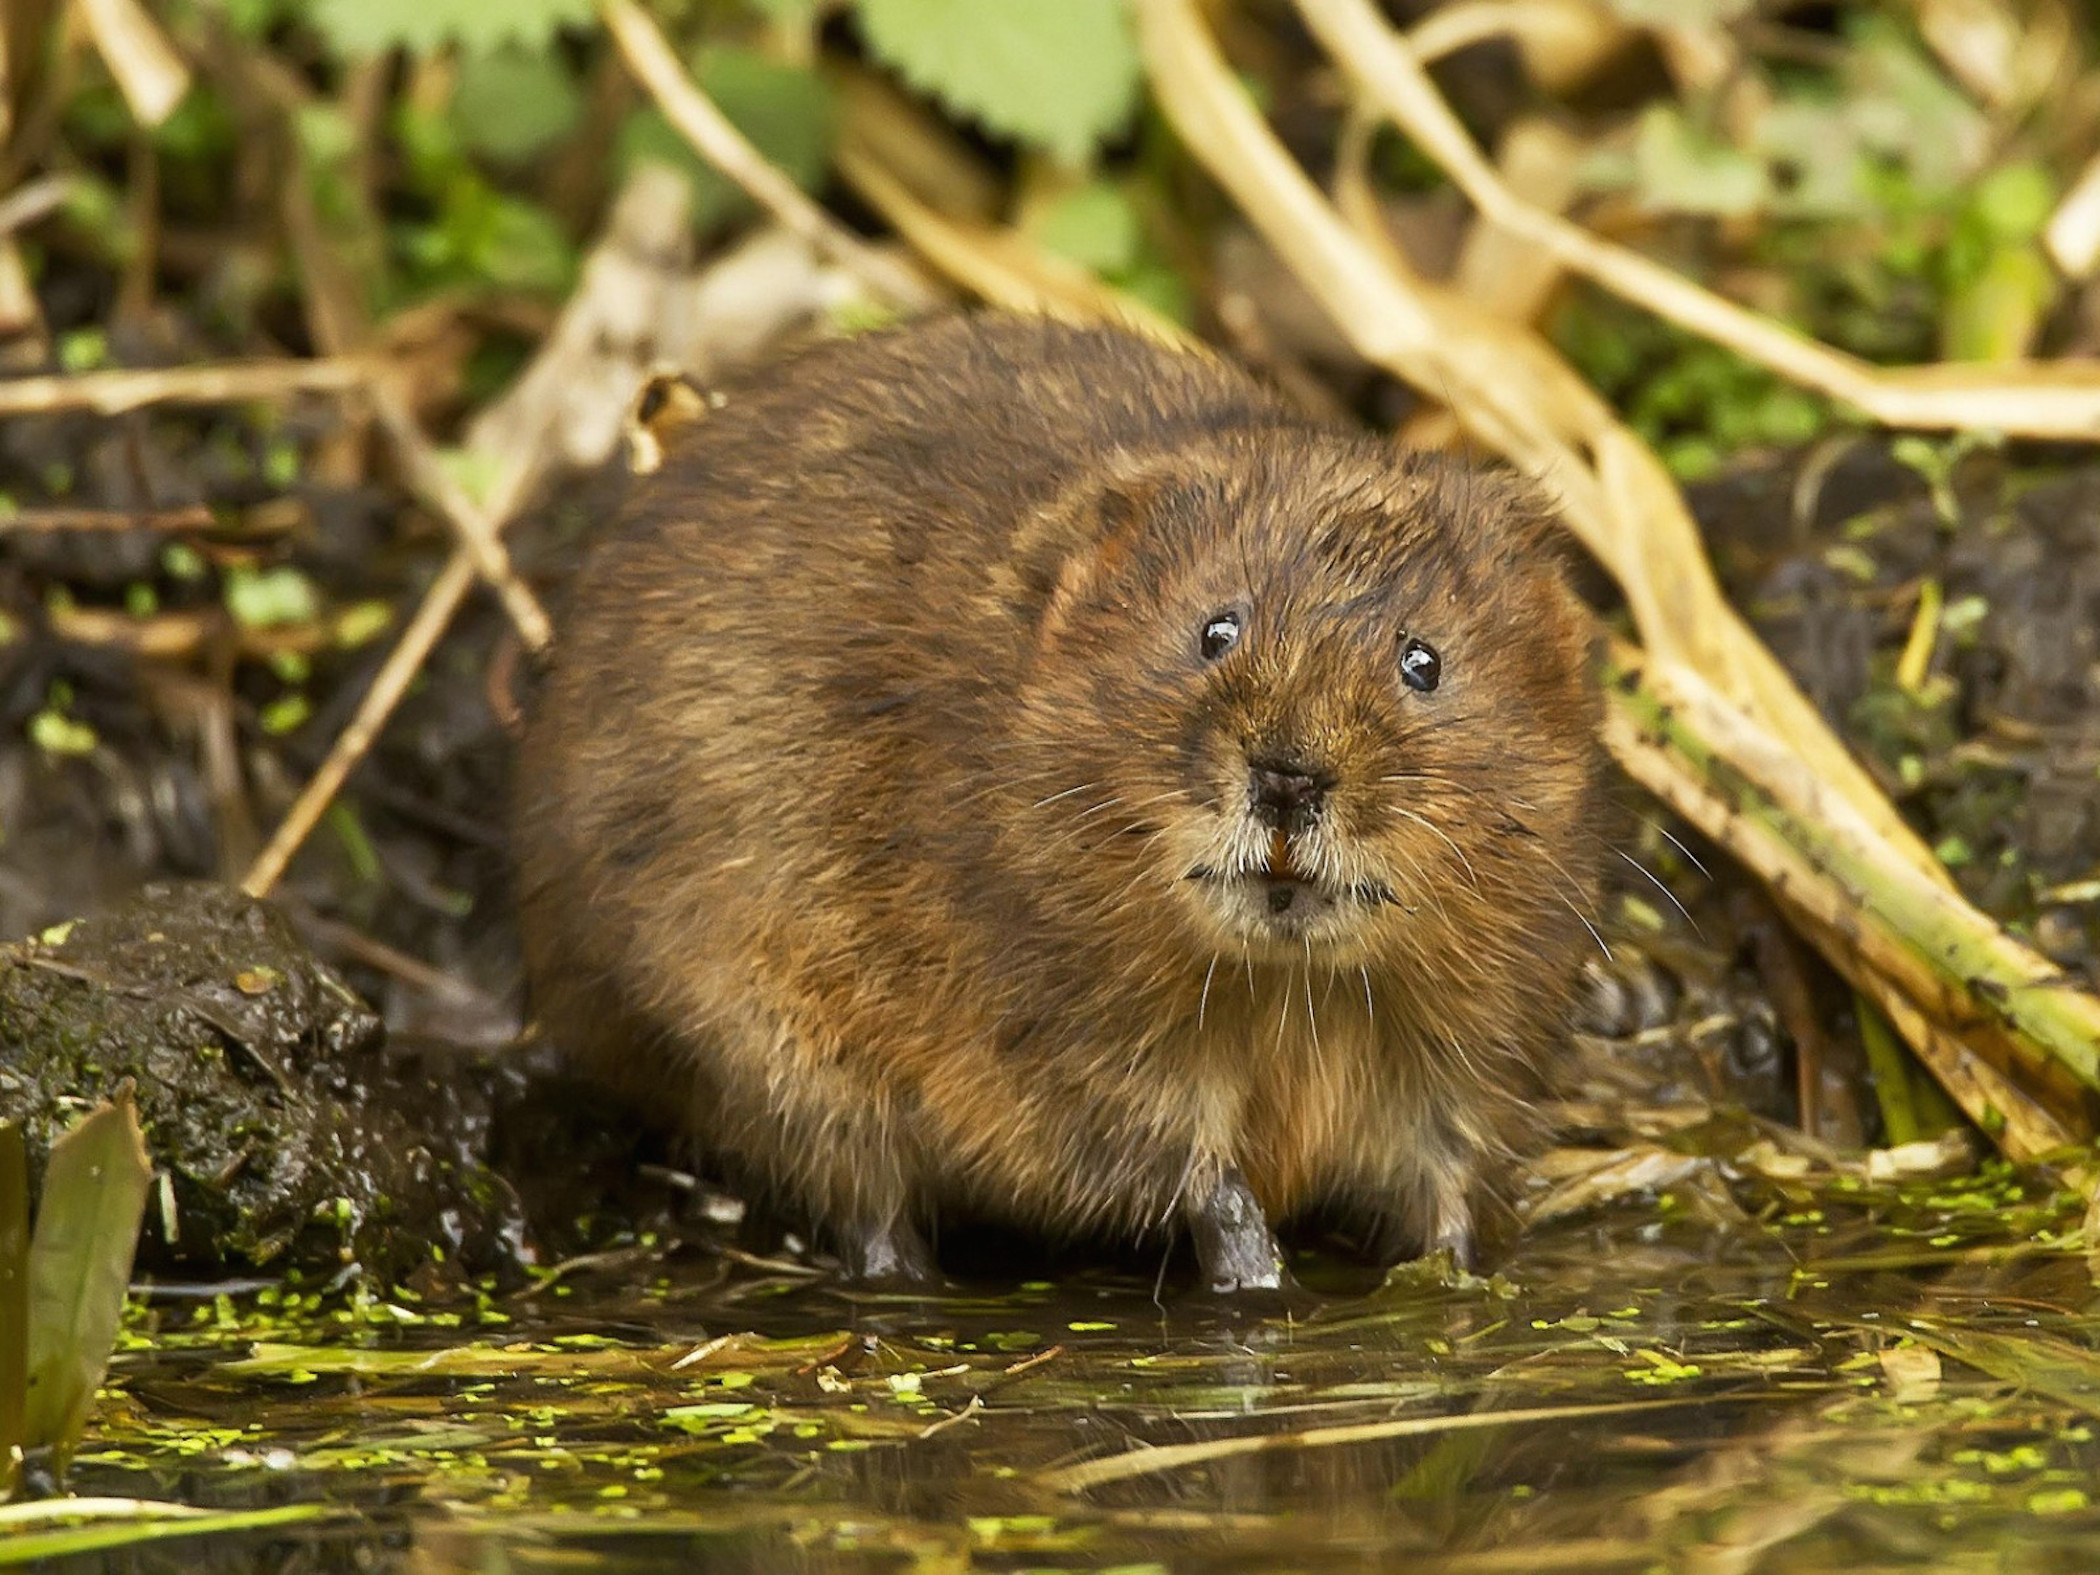 Muskrat Animal Wallpaper  Hd Backgrounds  Cool Wallpapers-7356